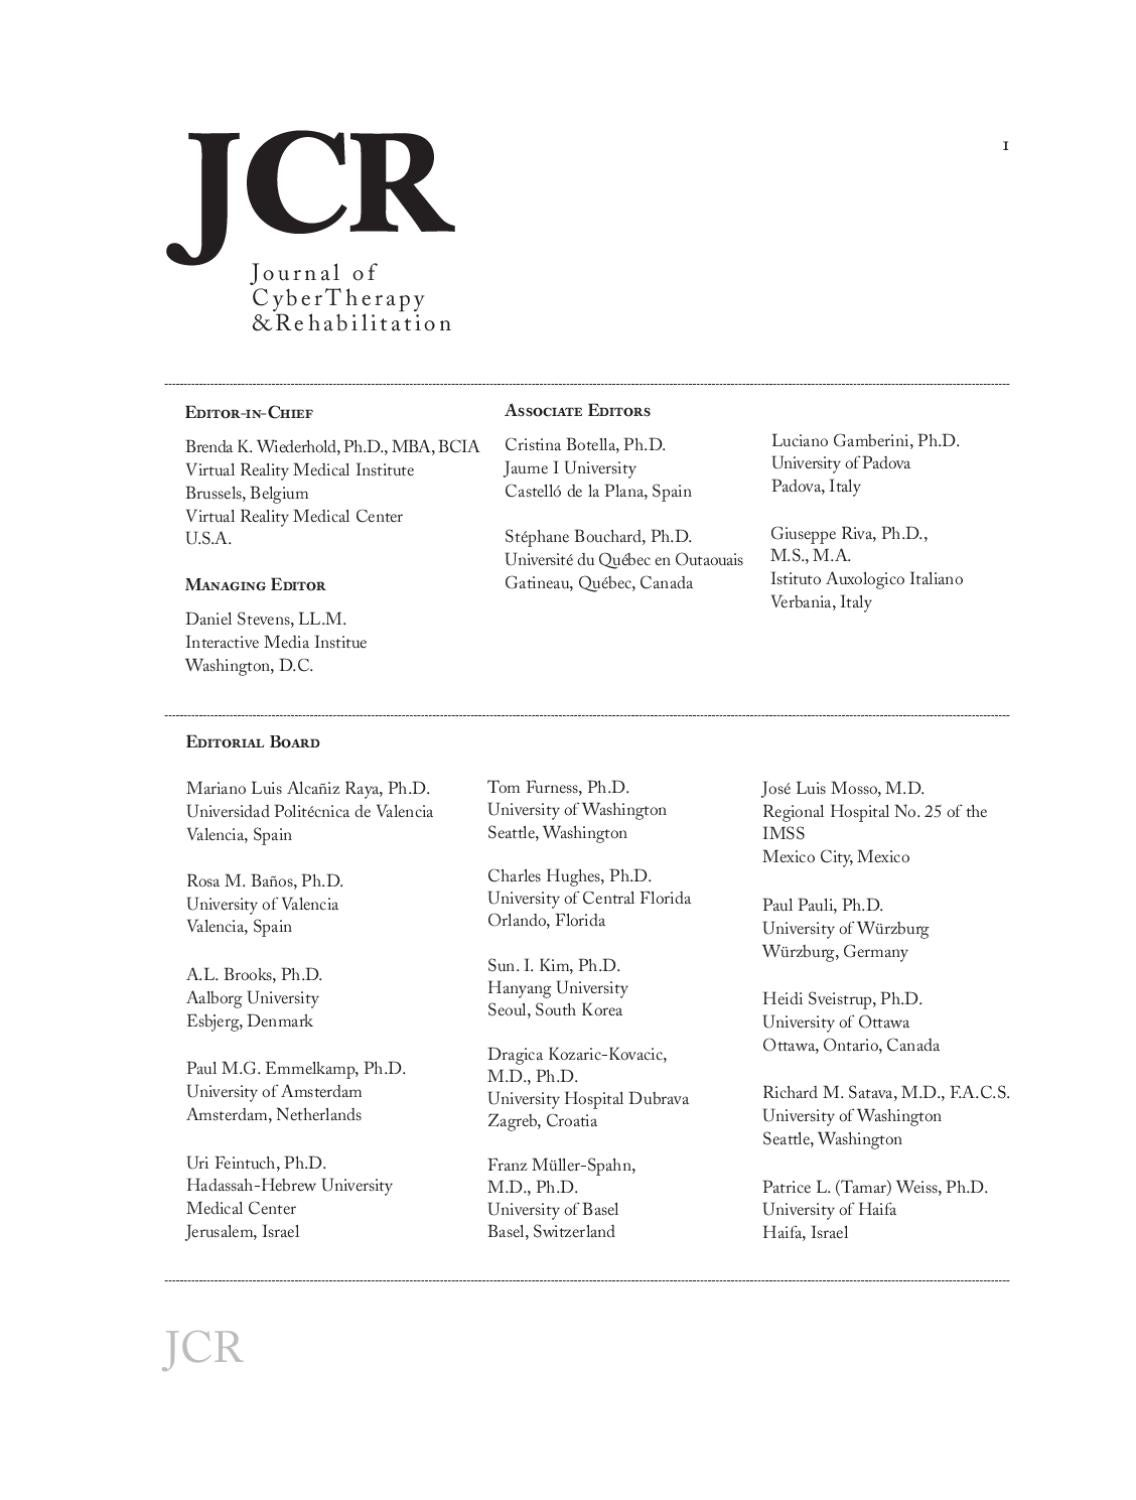 Journal of CyberTherapy and Rehabilitation, 2 (1), 2009 by